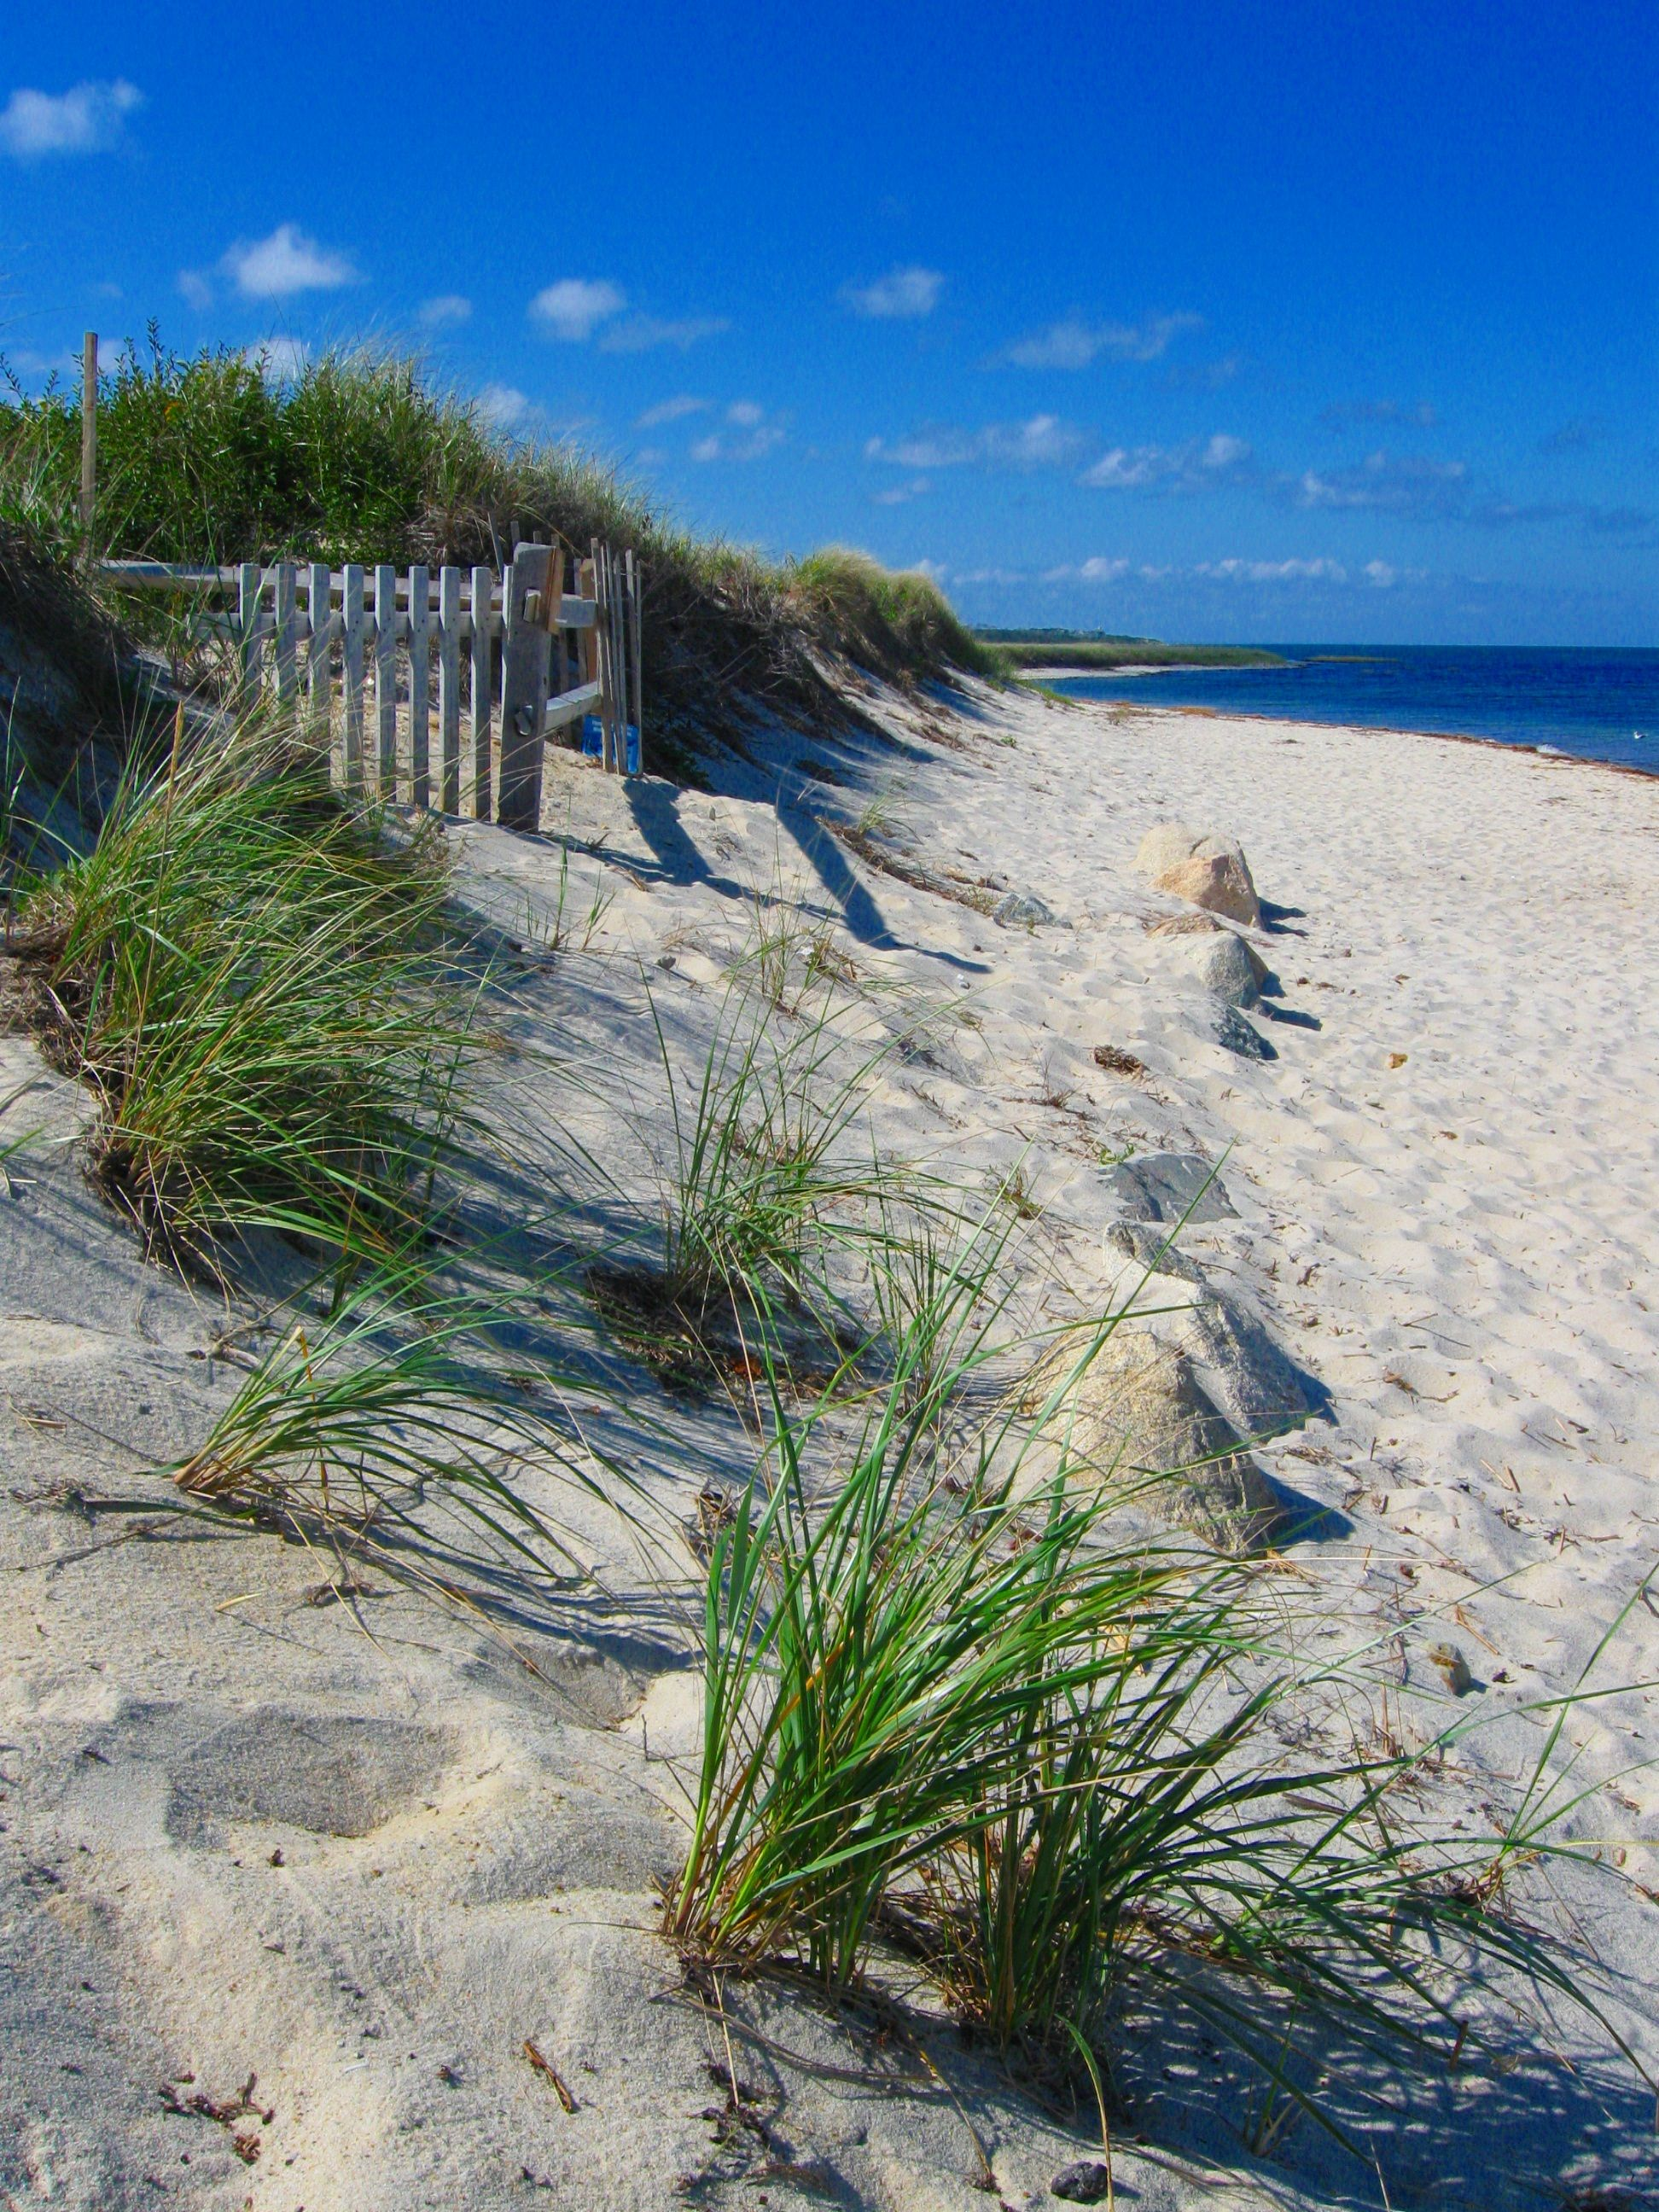 Mant's Landing Beach, Brewster, Cape Cod (I WILL have a